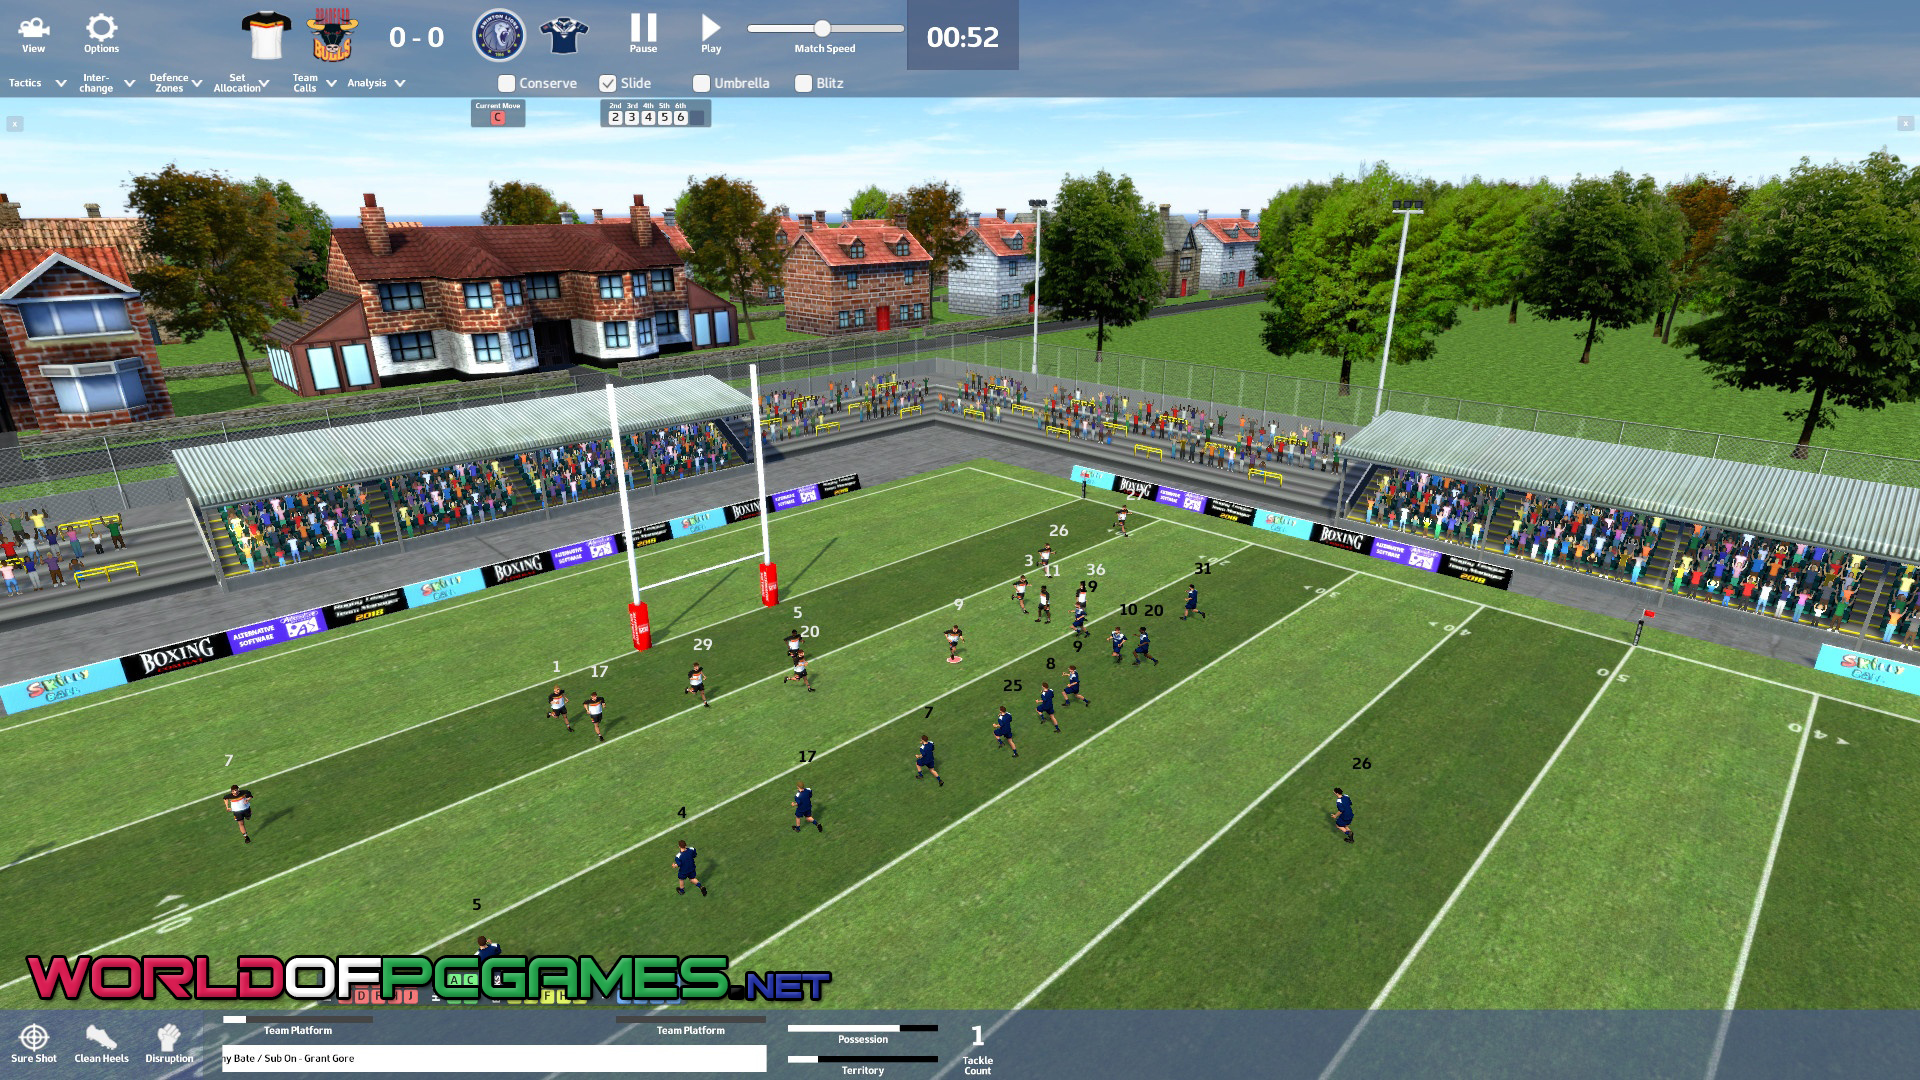 Rugby League Team Manager 2018 Free Download PC Game By Worldofpcgames.com